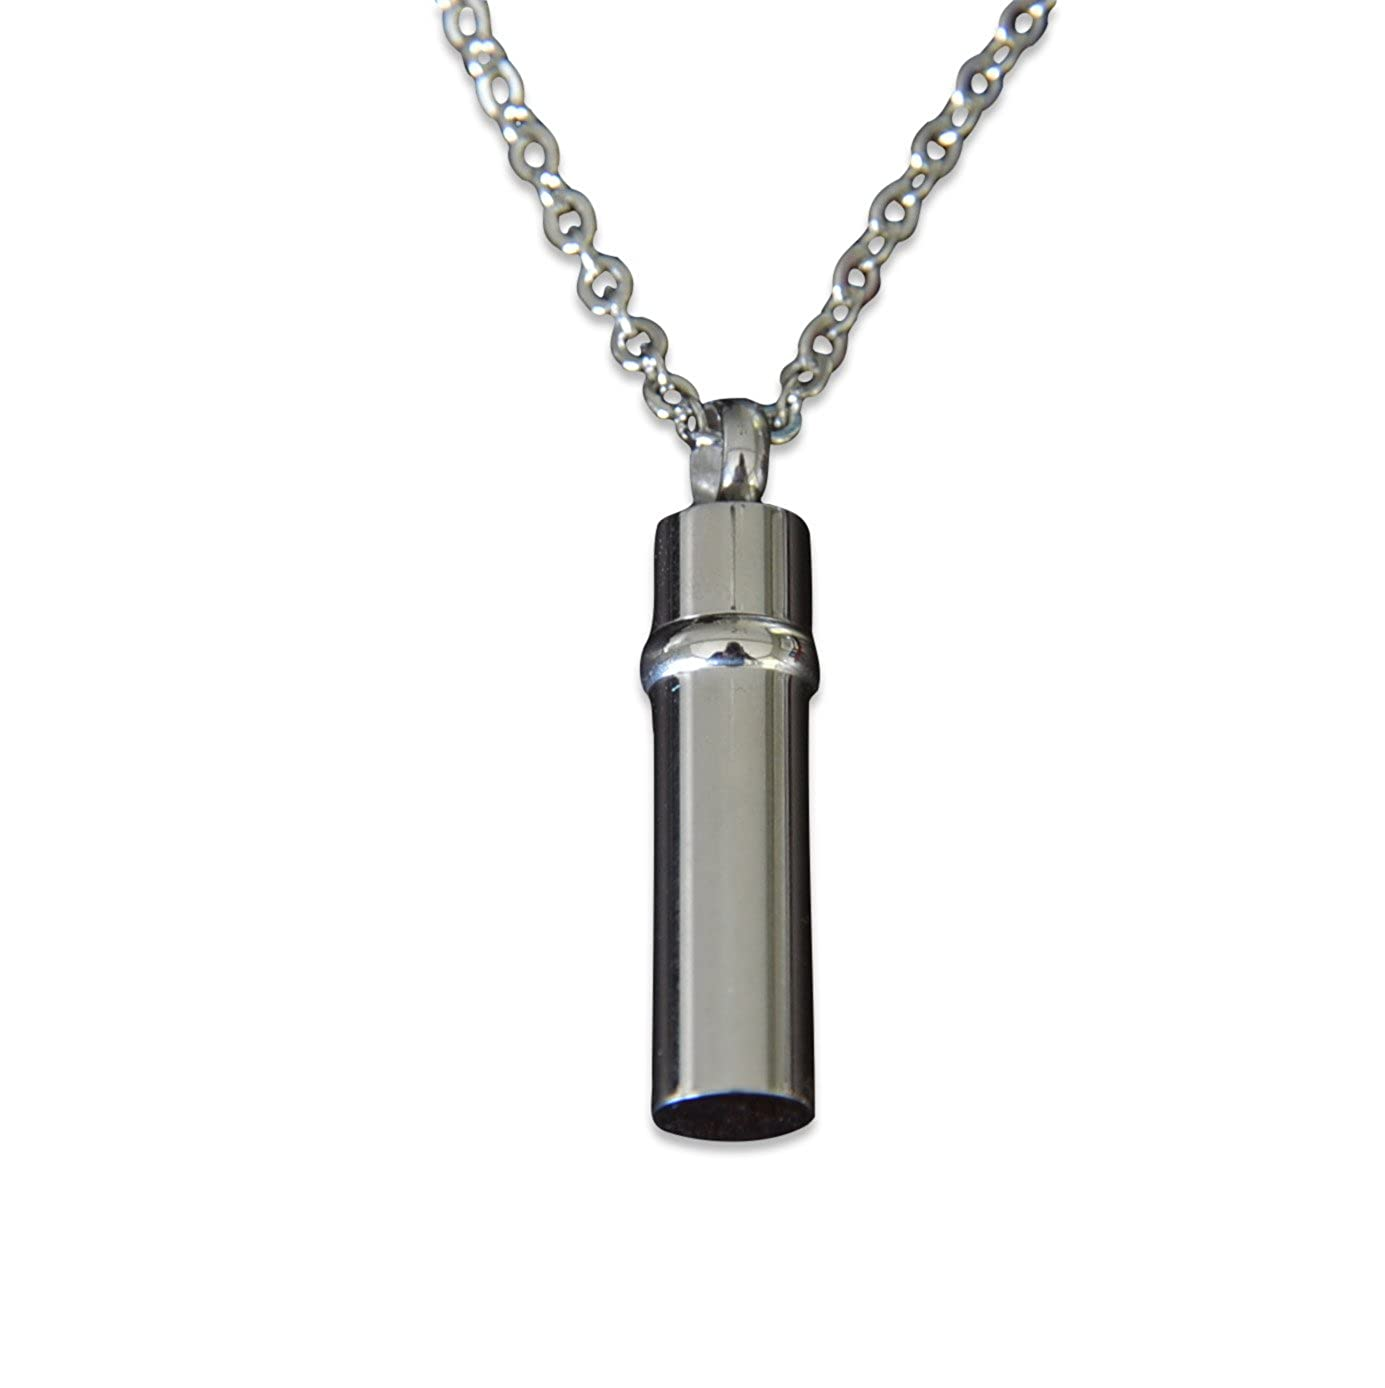 Amazon.com: Joyas en plata Poison Vial Prayer Cápsula Para ...